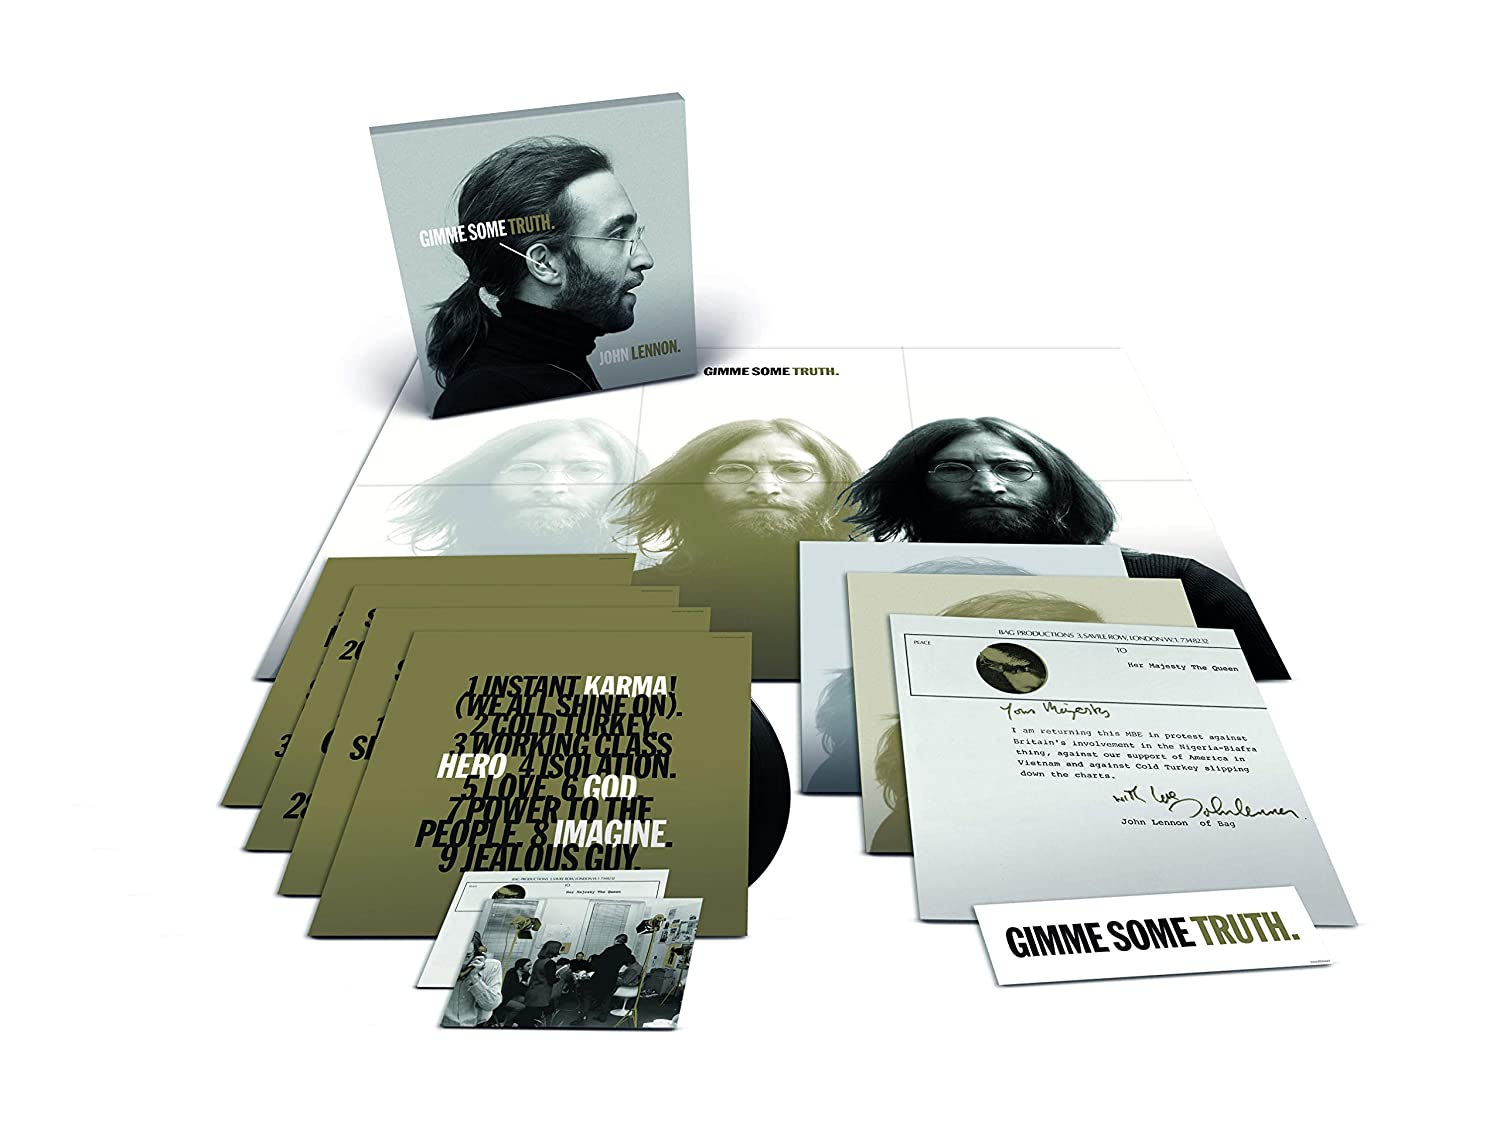 Gimme some truth 2020 version vinyle remasterisee